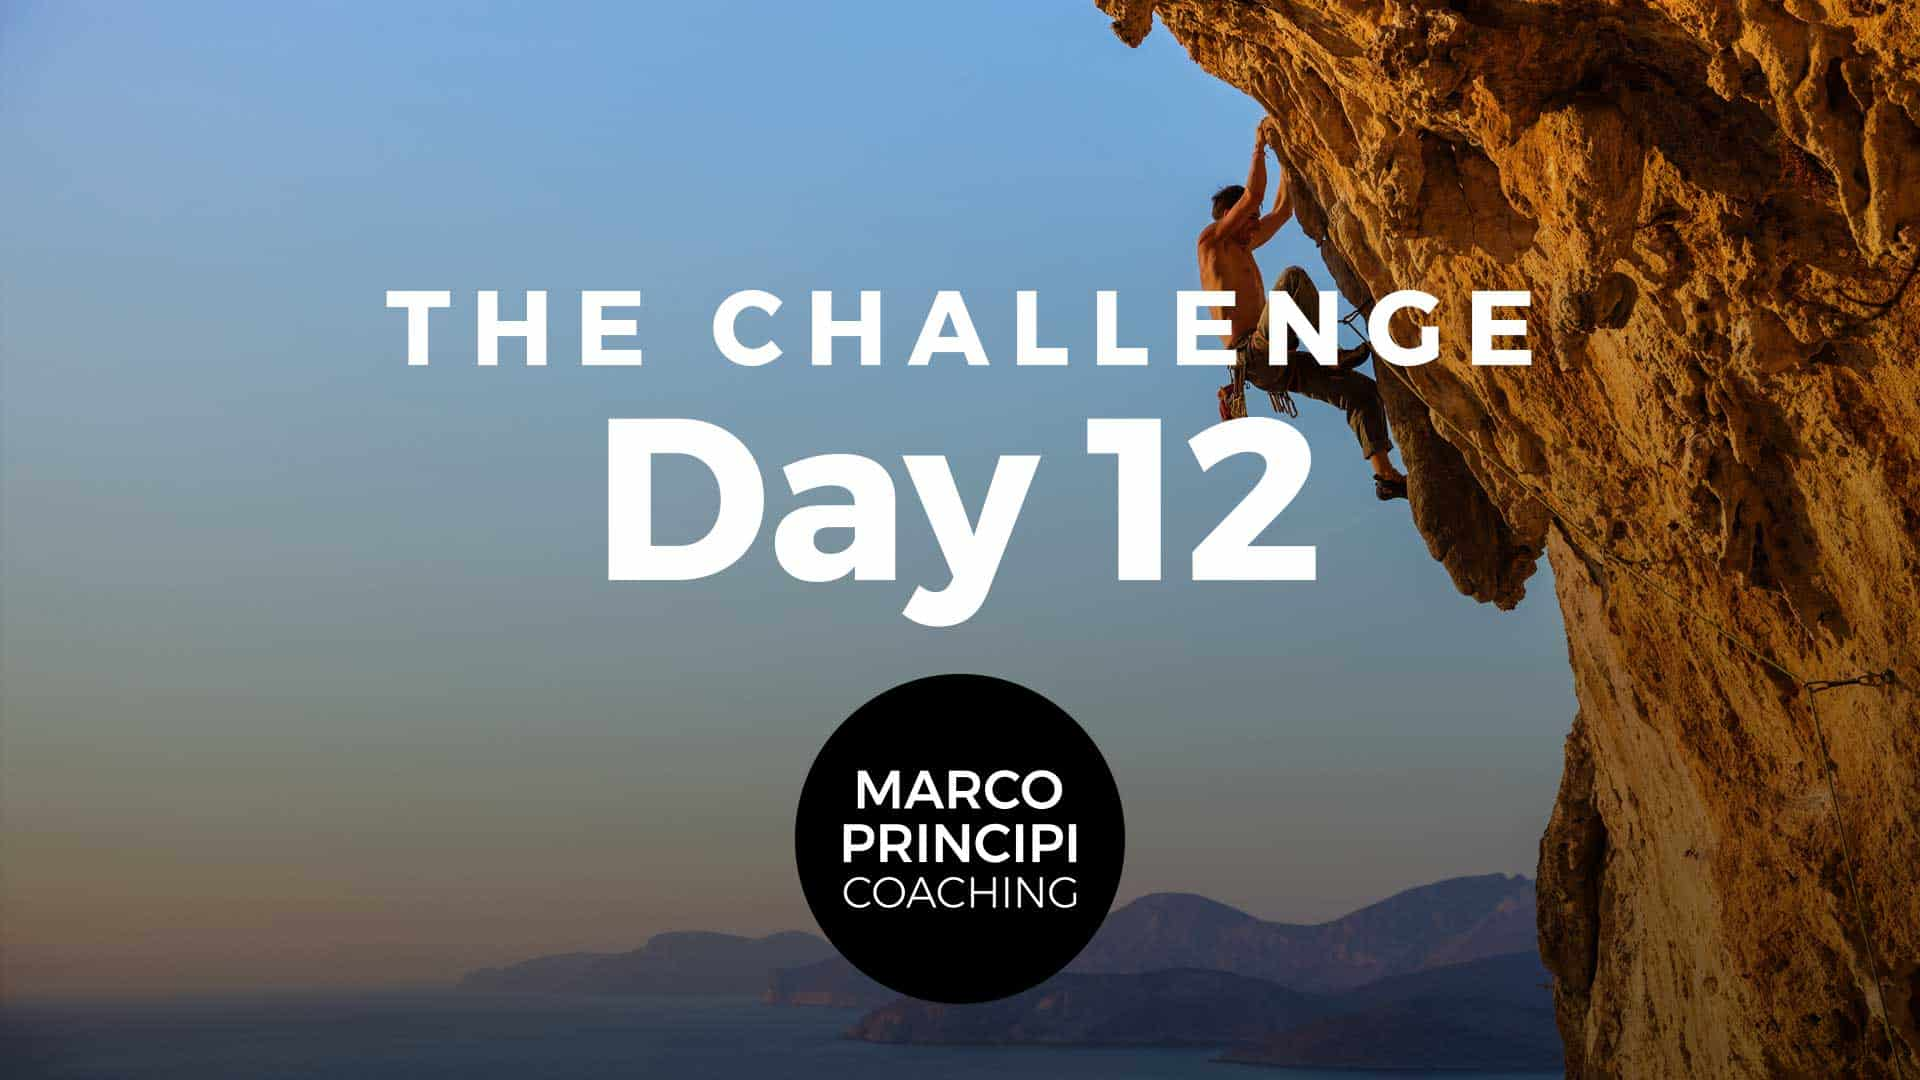 Marco Principi YT Cover The Challenge Day 012